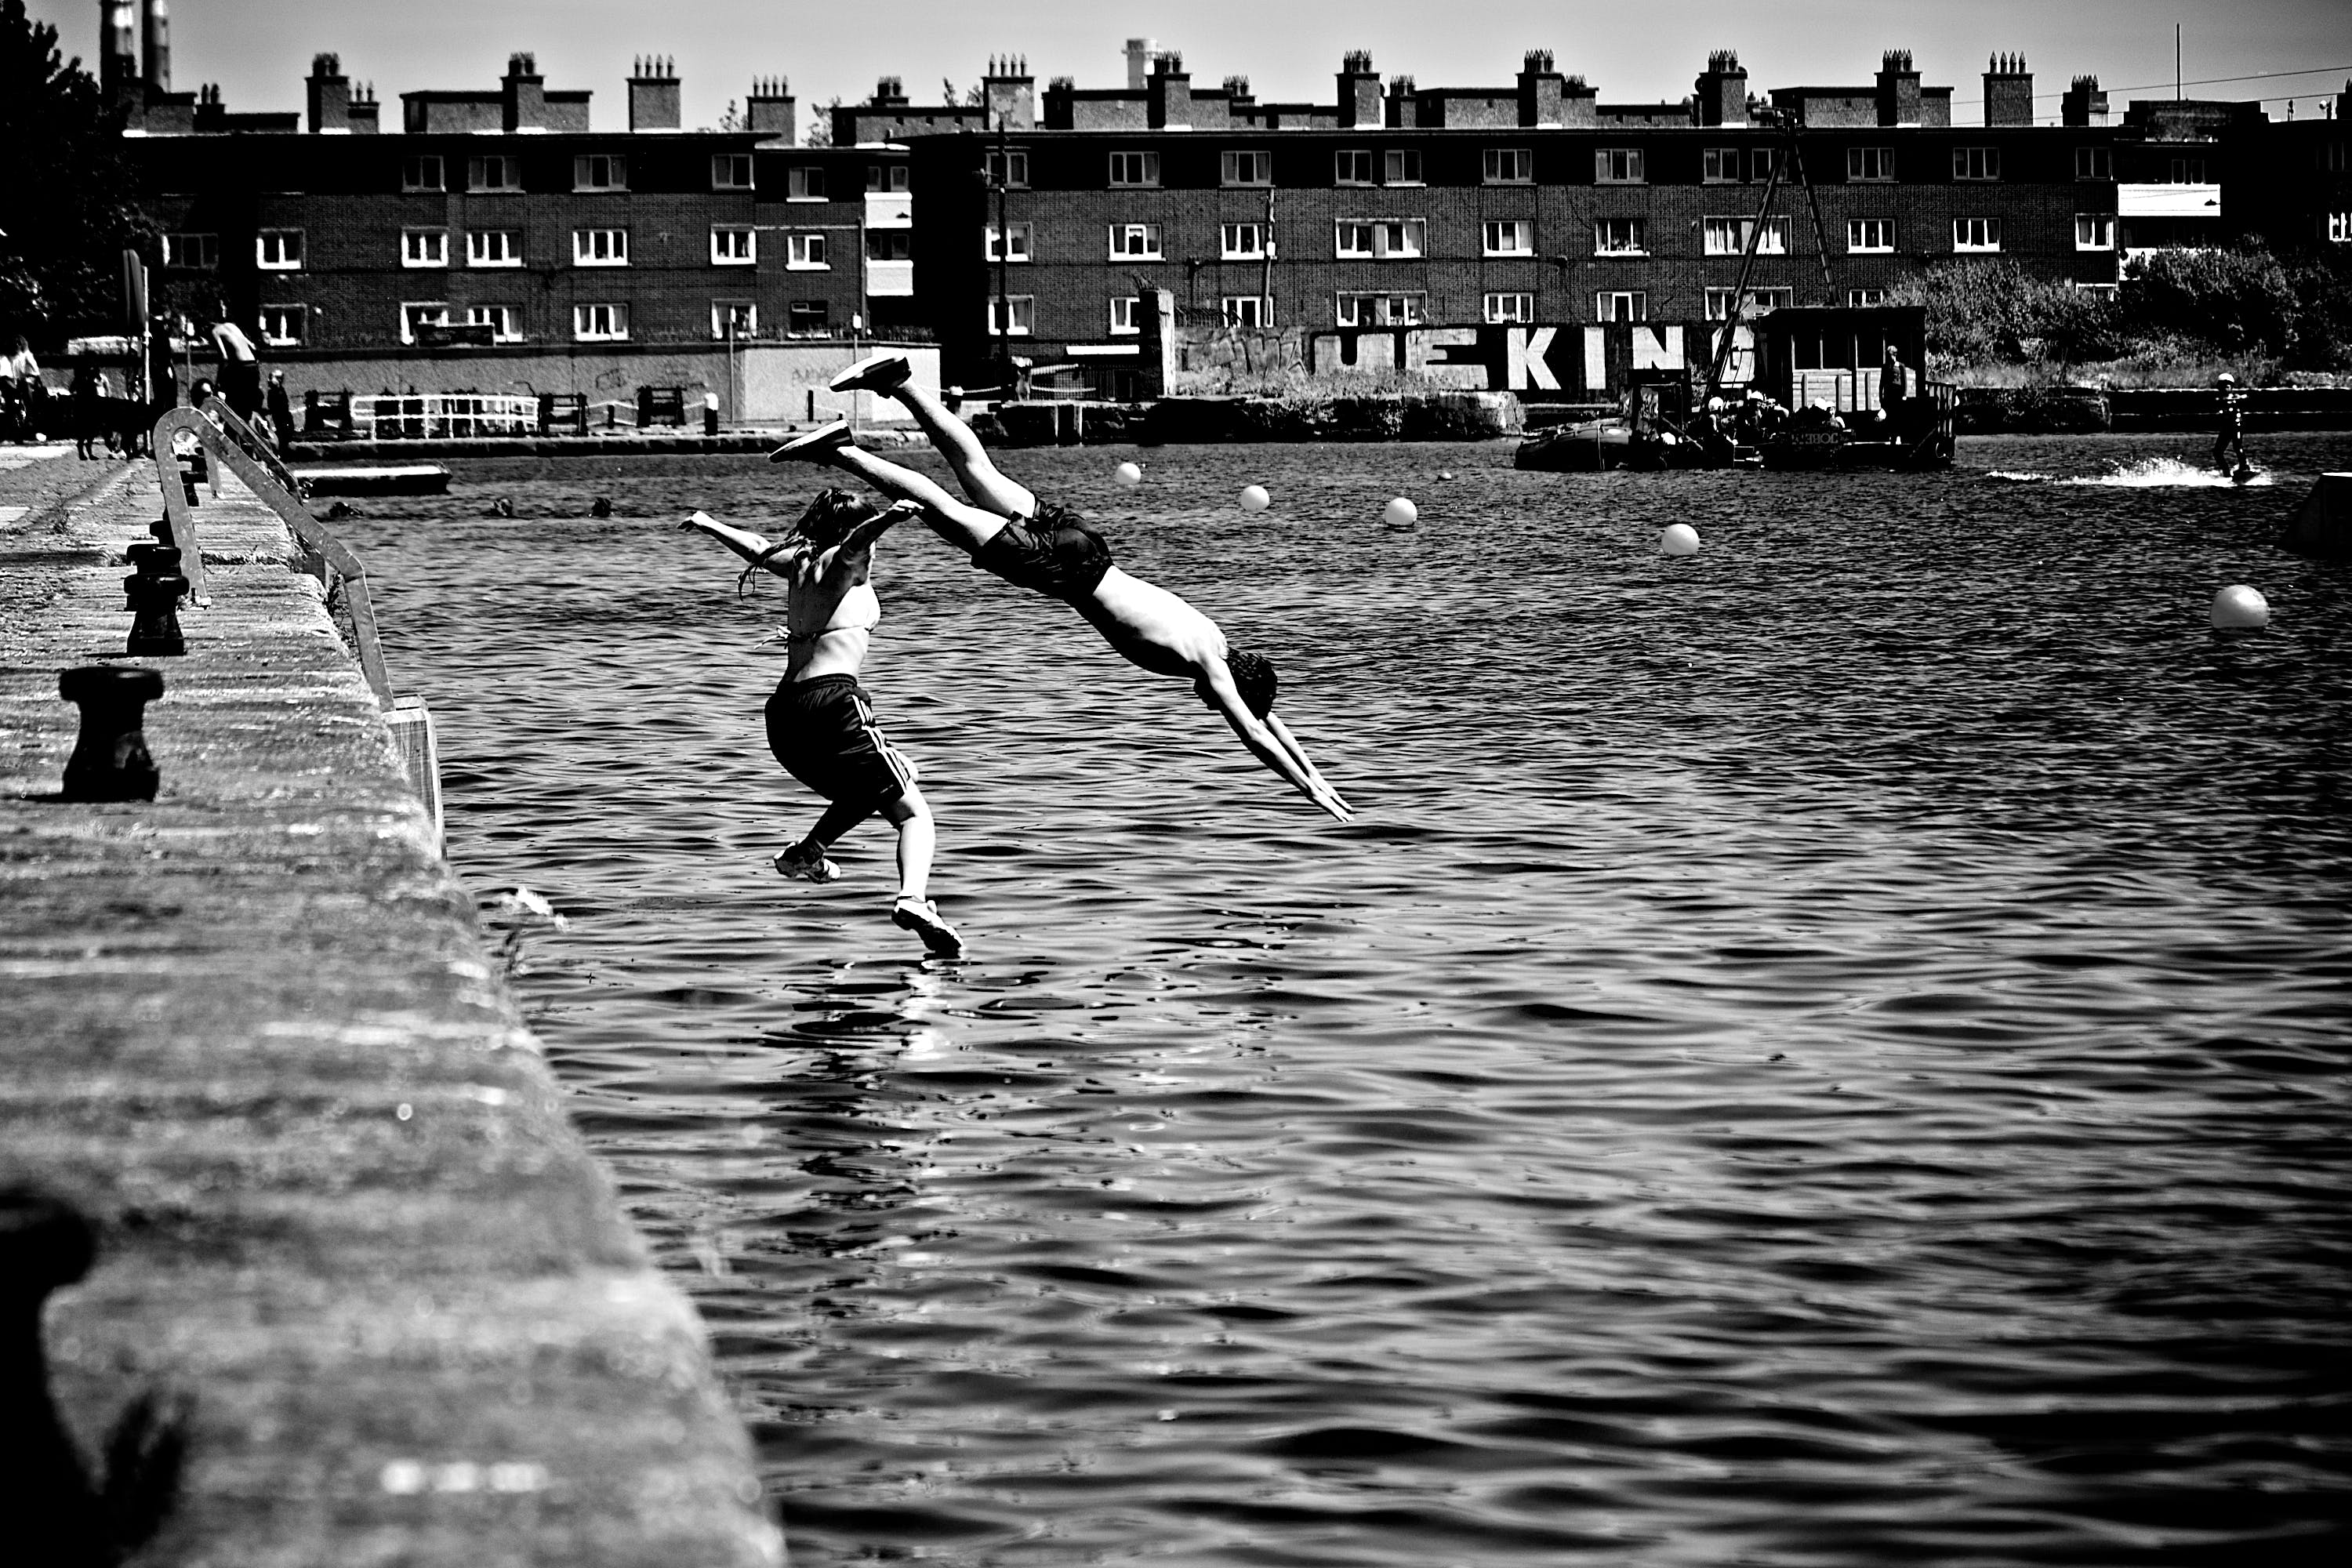 Boy and Girl Jumping in Body of Water